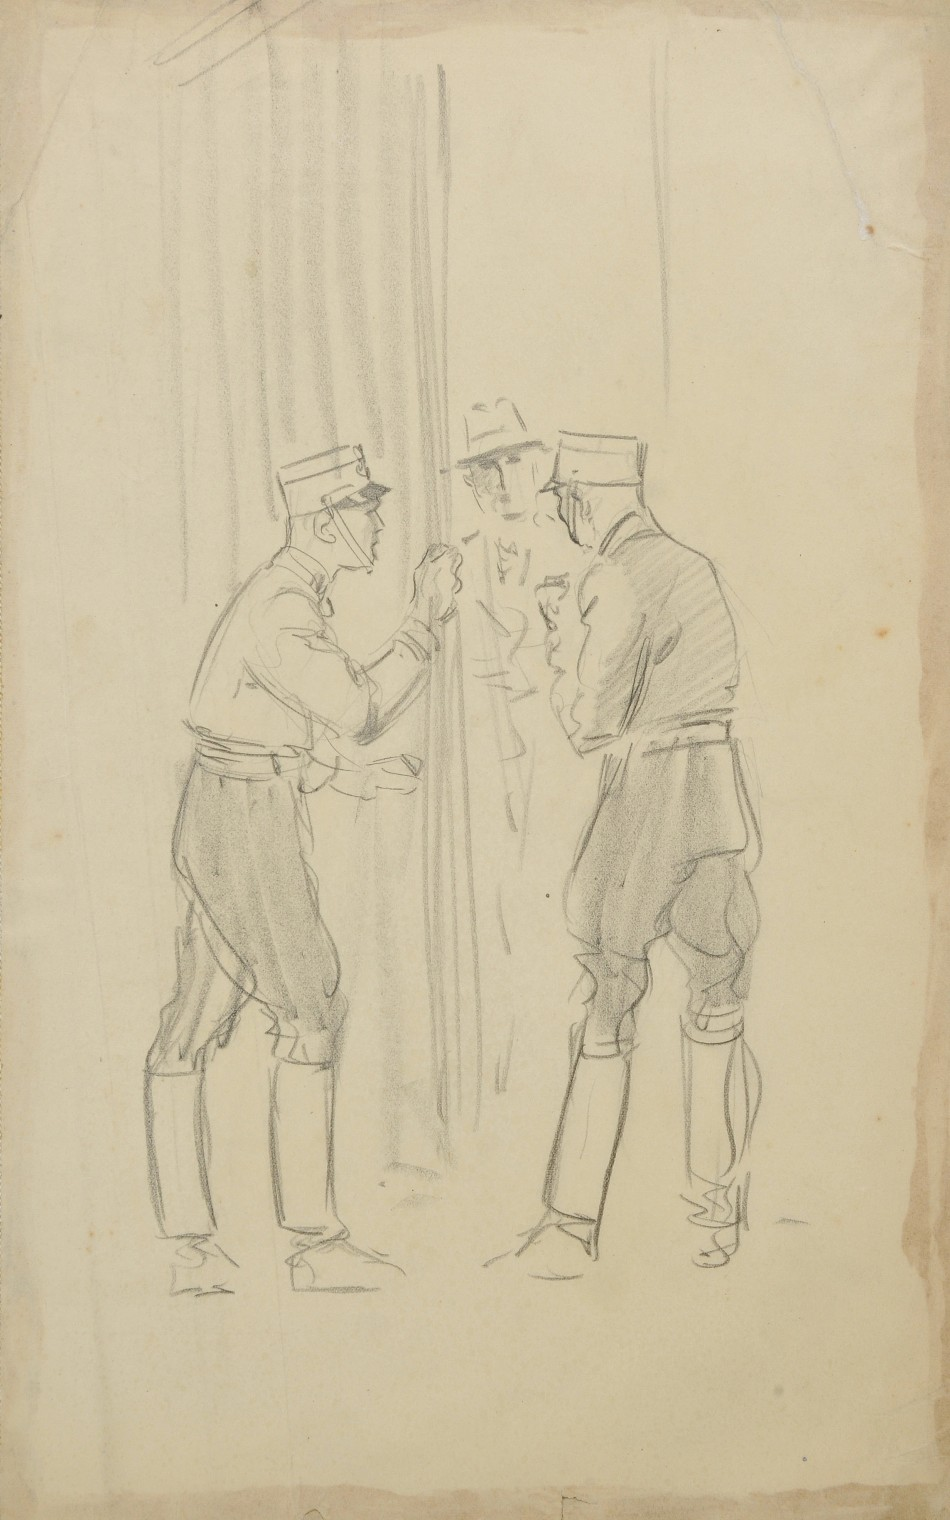 This sketch shows two Nazis opening a curtain to a civilian